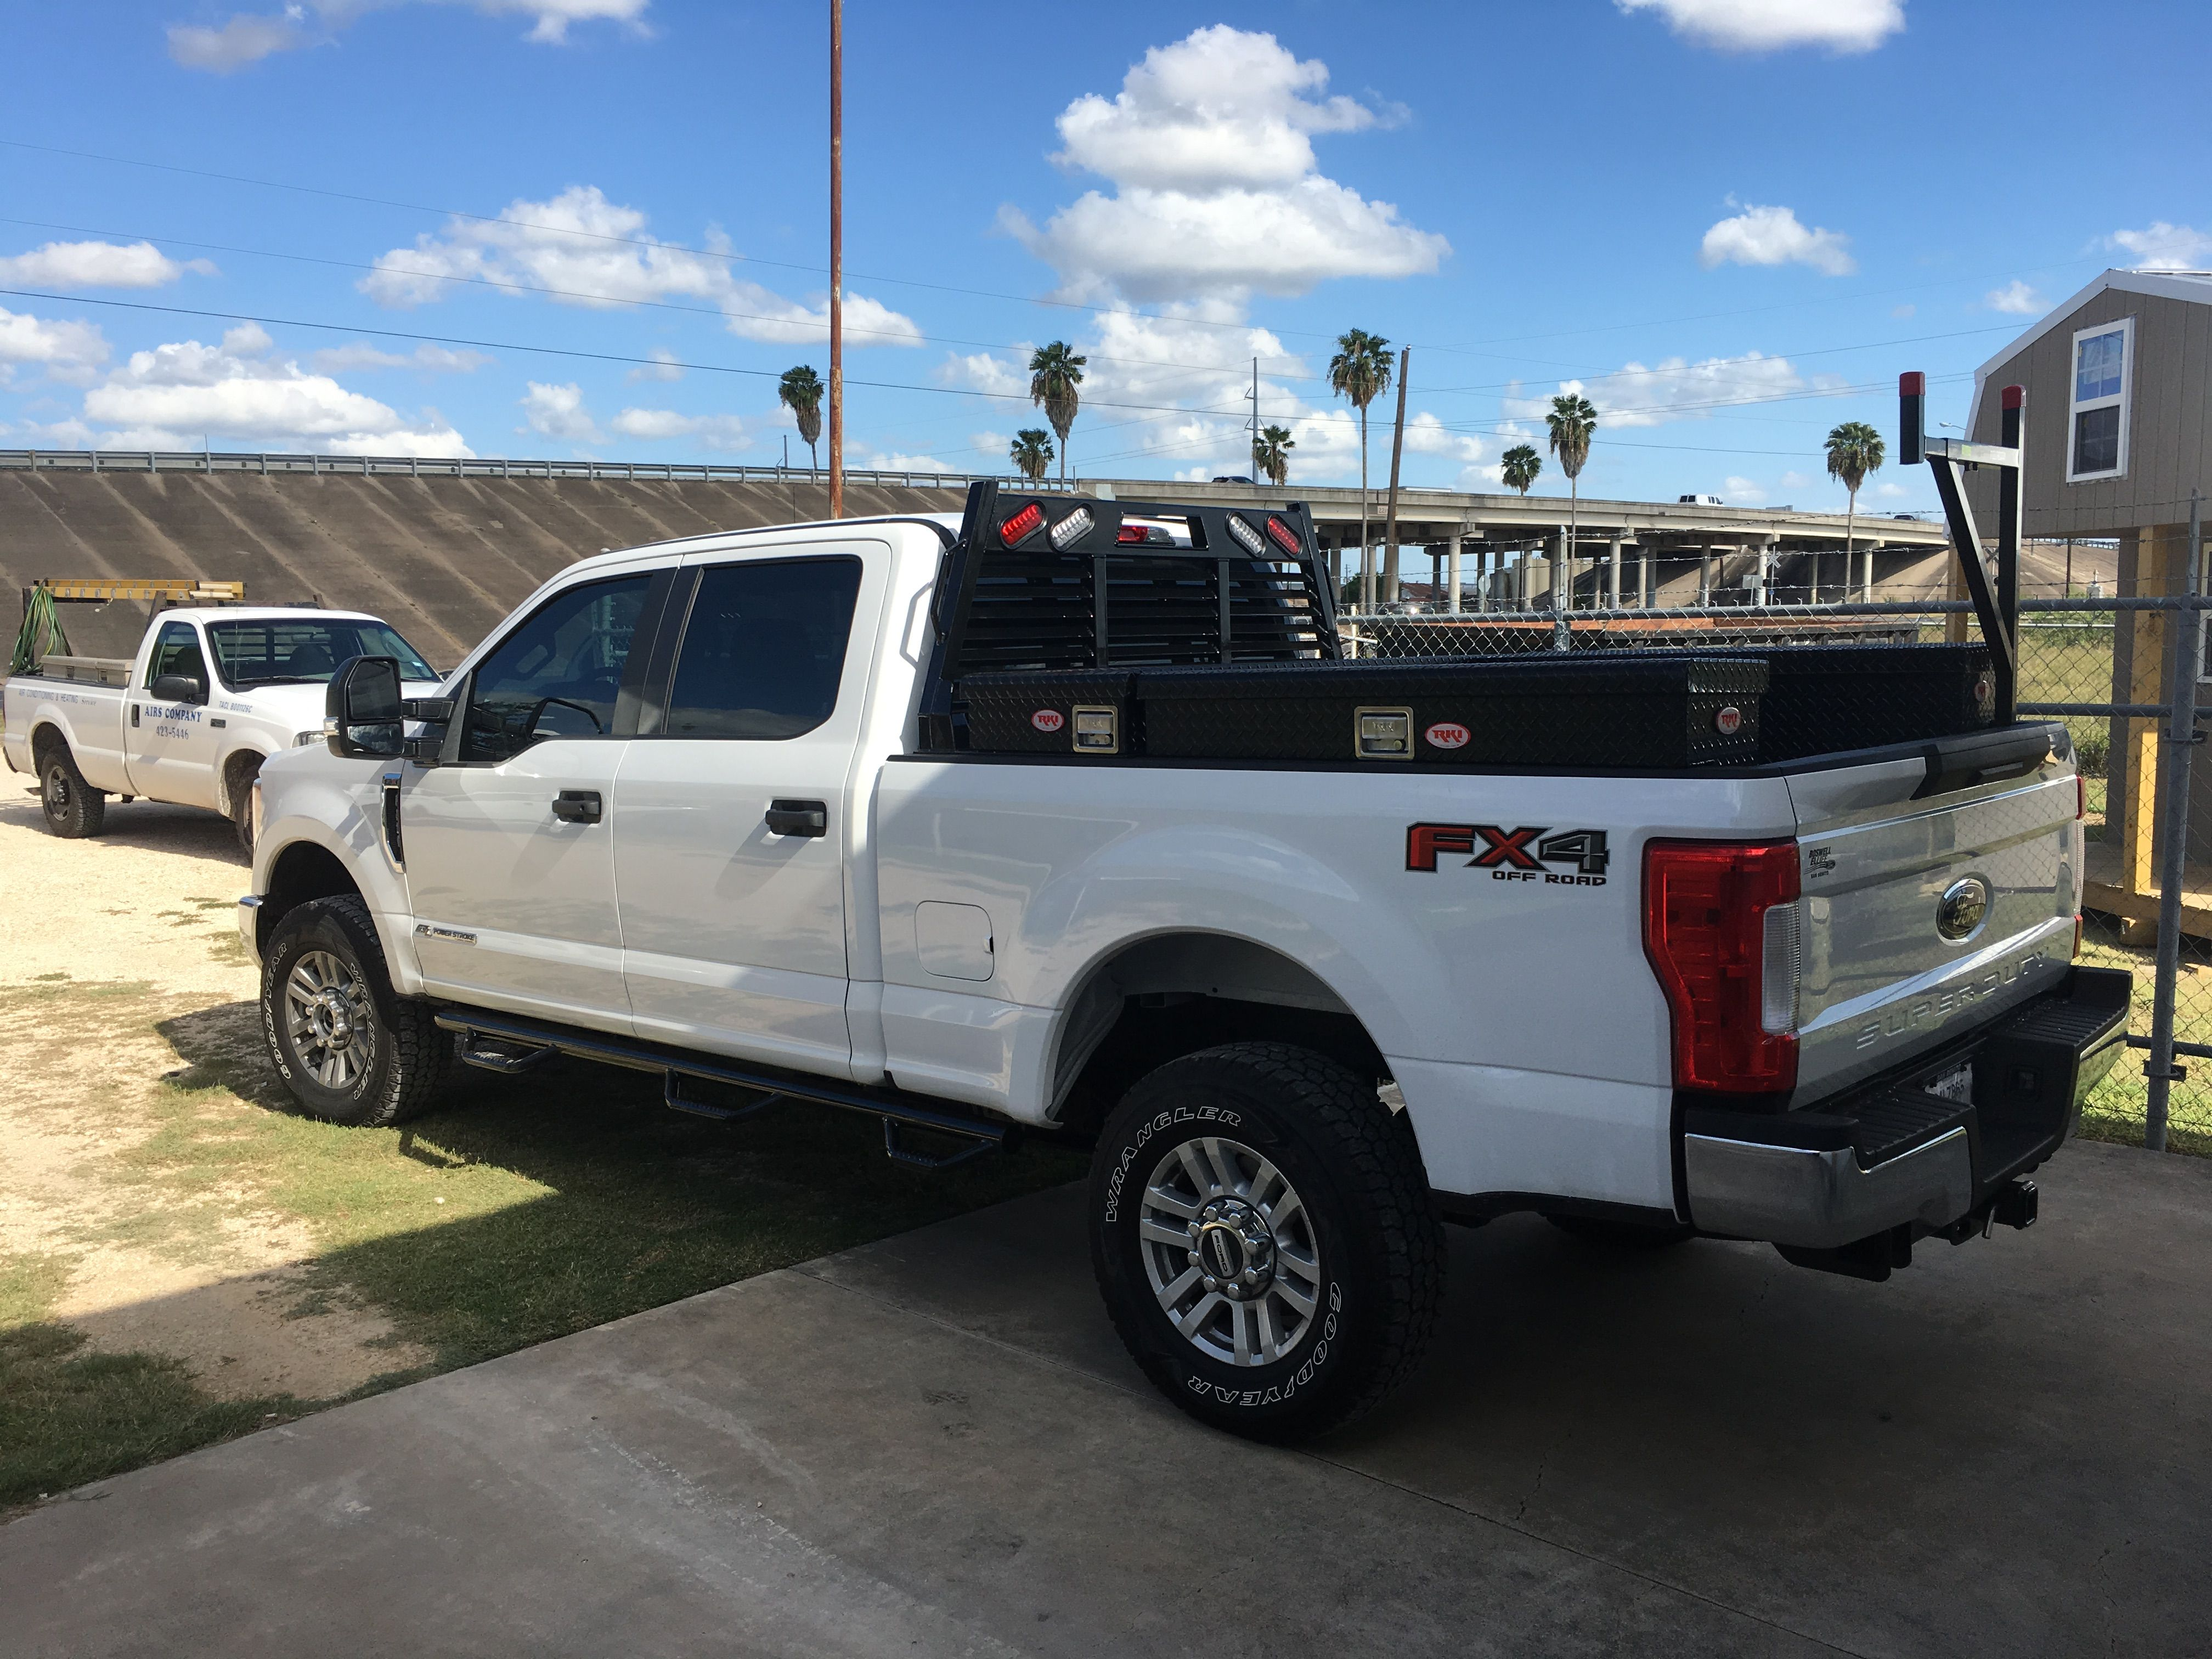 F250 Headache Rack >> 2017 F250 With Rki Boxes Headache Rack Ladder Rack And